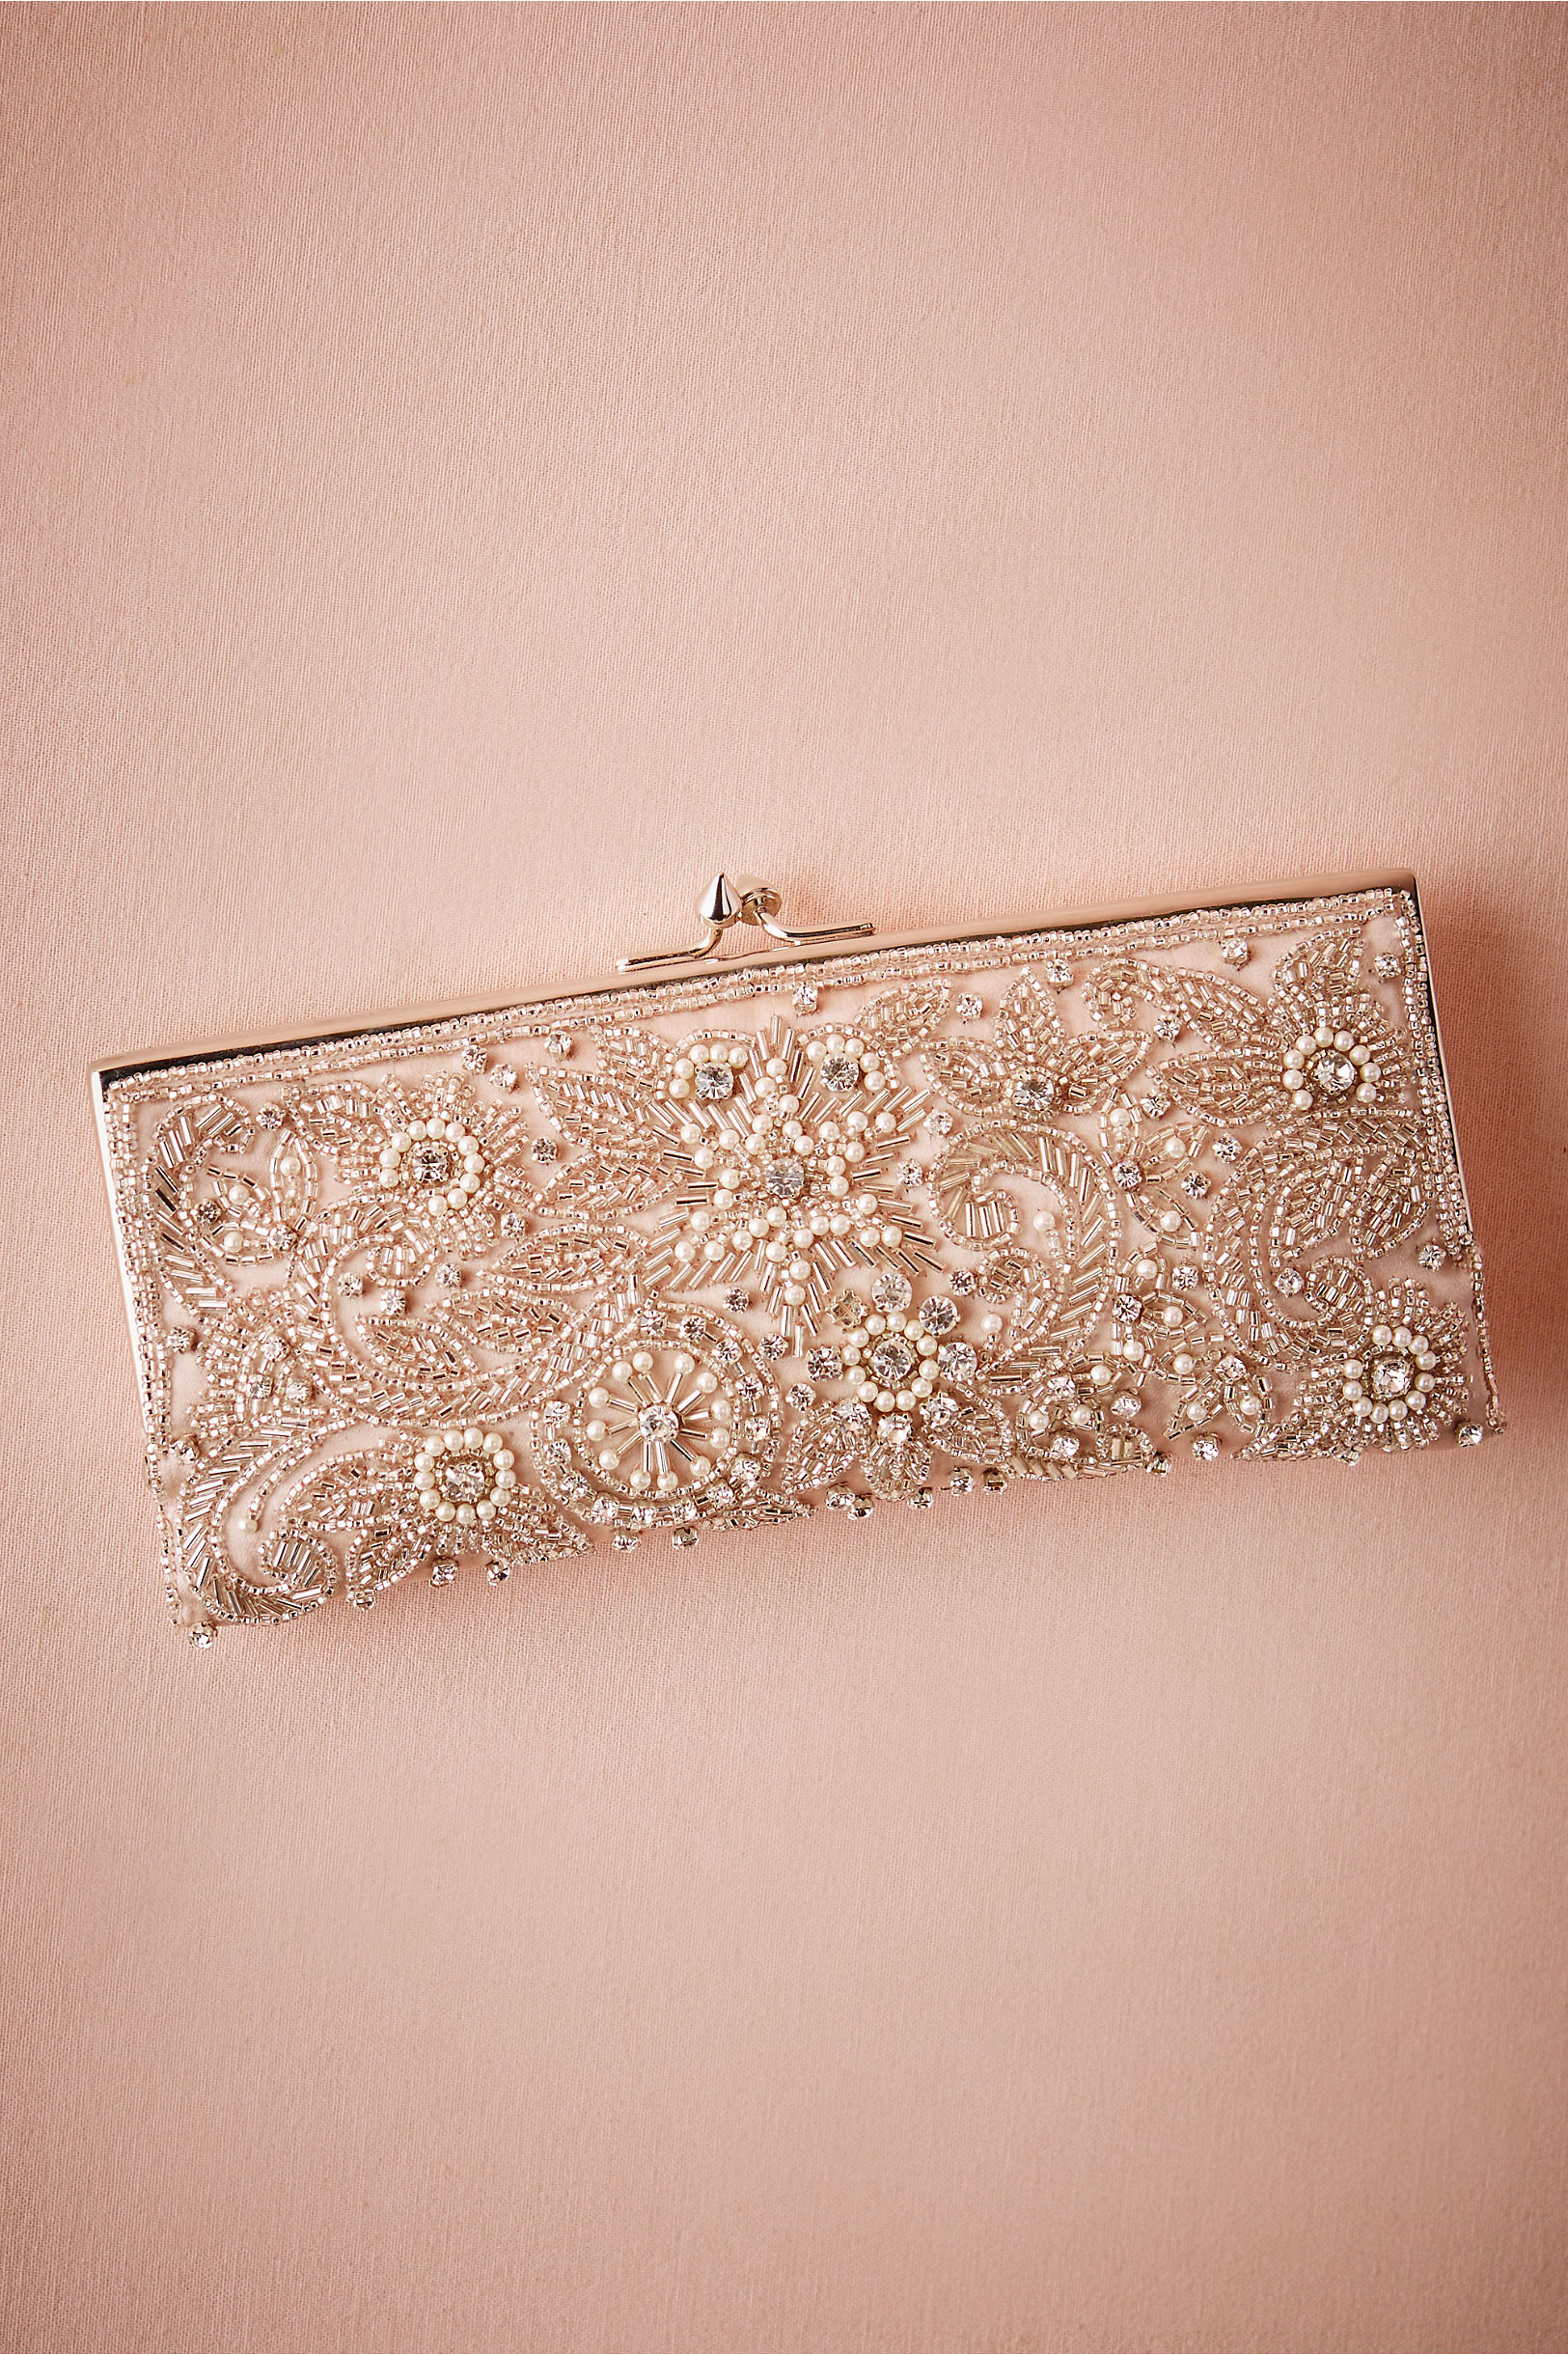 BHLDN Tearoom Clutch